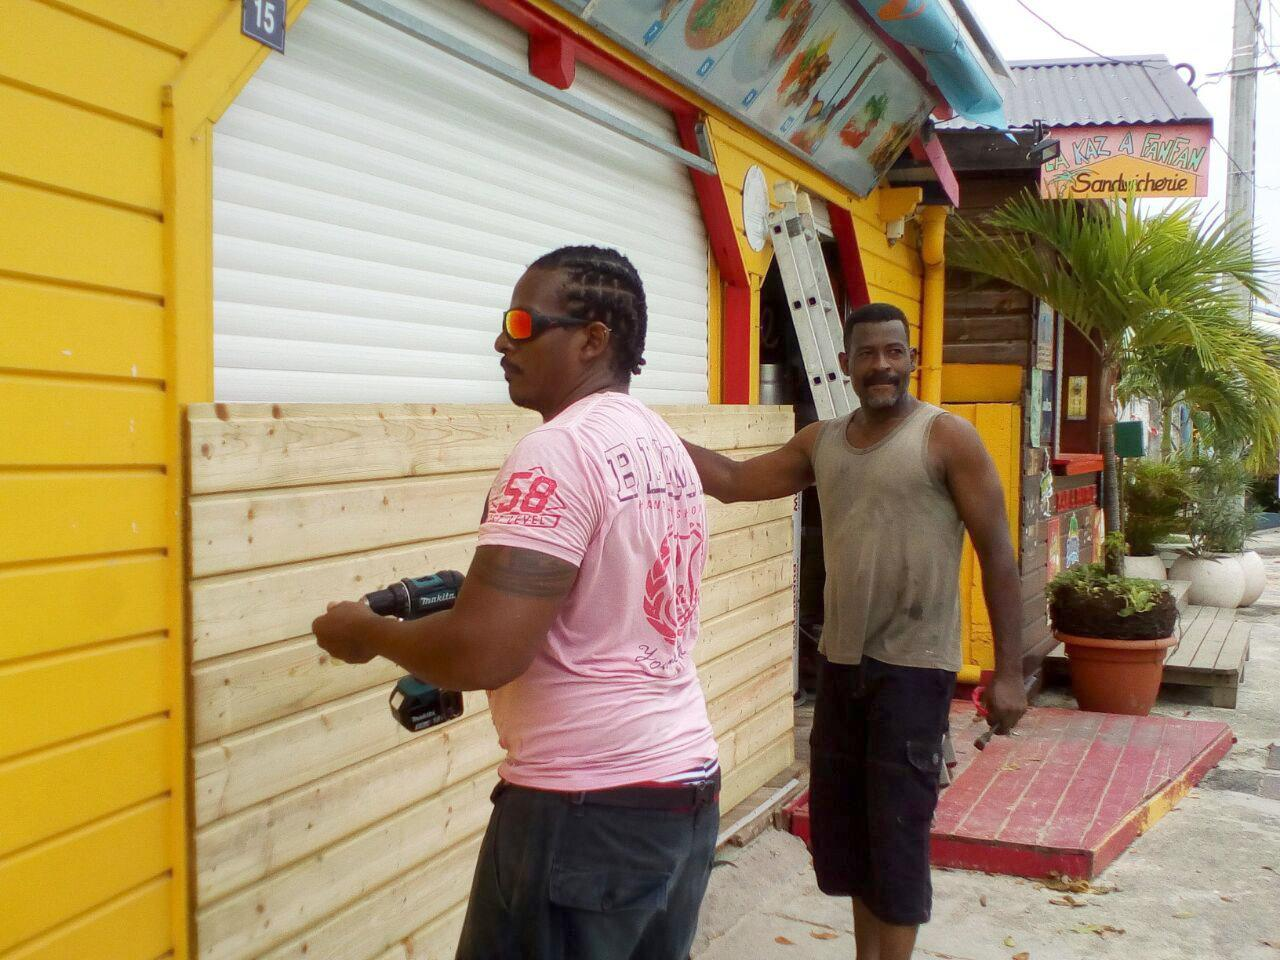 Men board up buildings ahead of Hurricane Maria in Sainte-Anne on the French Caribbean island of Guadeloupe, Monday, Sept. 18, 2017. Hurricane Maria grew into a Category 3 storm on Monday as it barreled toward a potentially devastating collision with islands in the eastern Caribbean. (AP Photo/Dominique Chomereau-Lamotte)